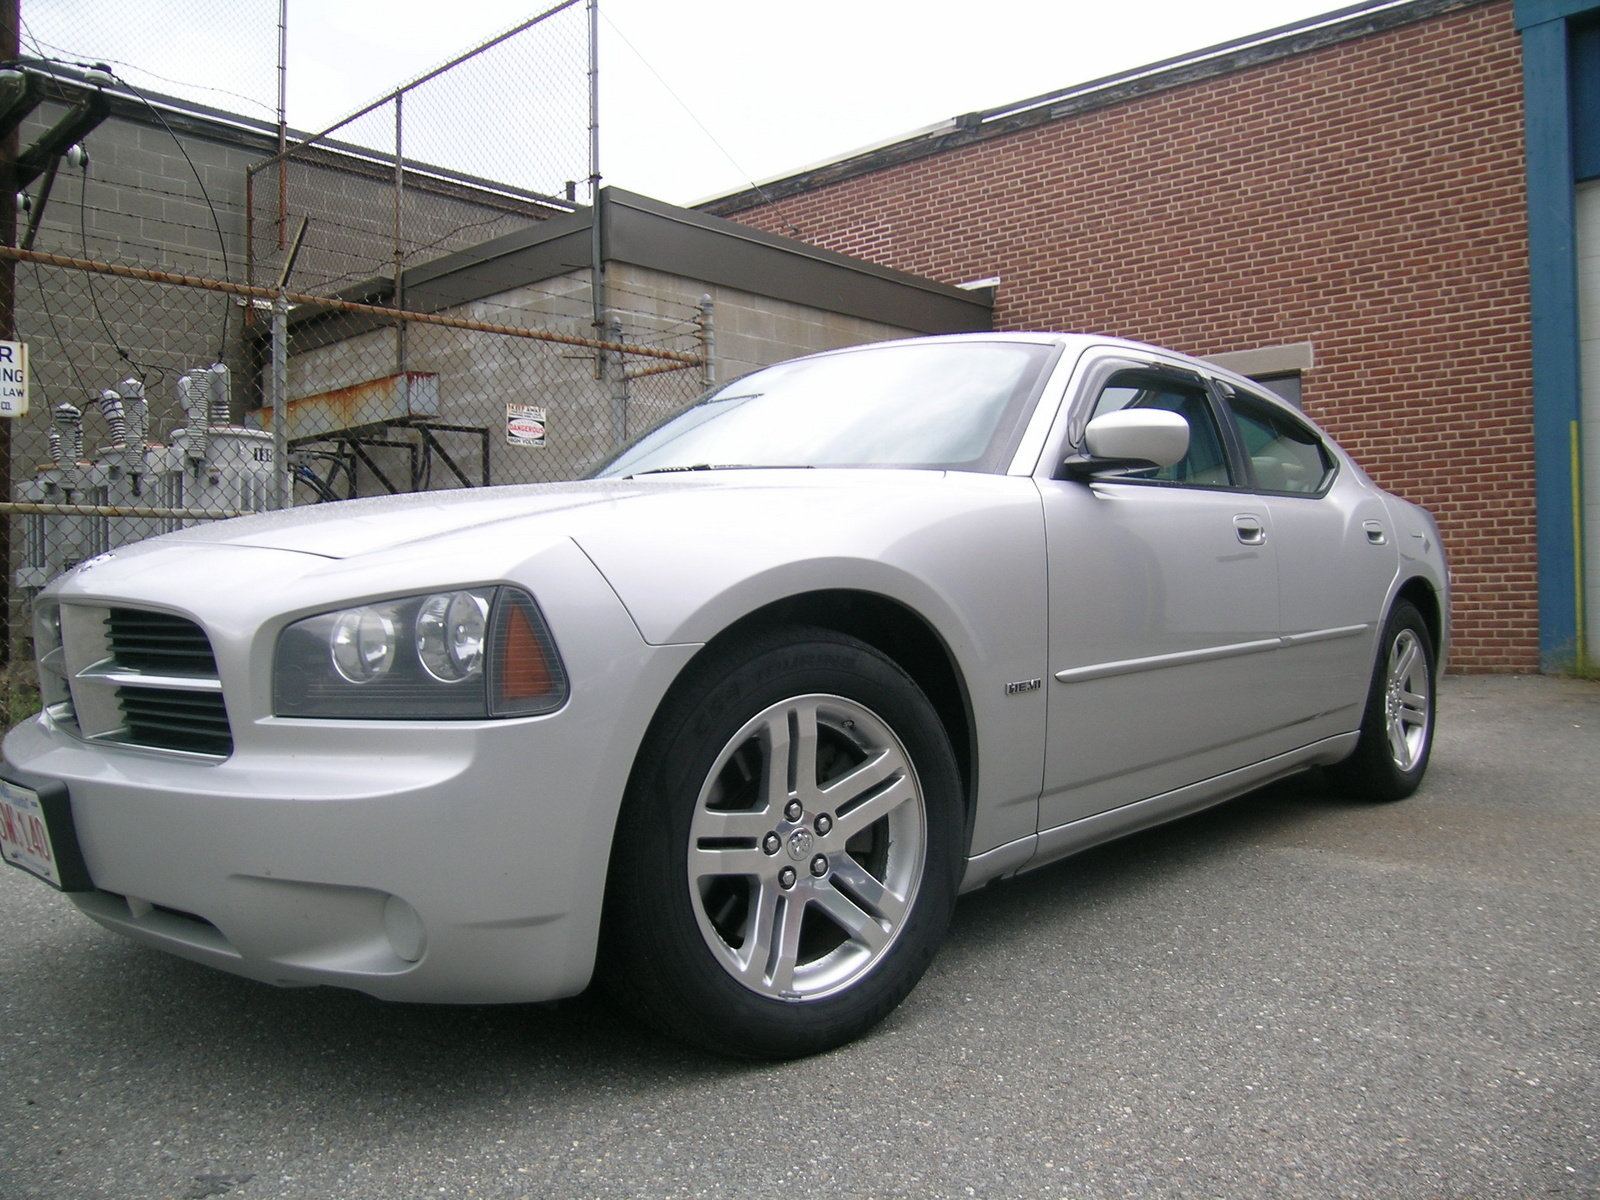 photos review specs and charger h the connection car for sale overview prices ratings dodge